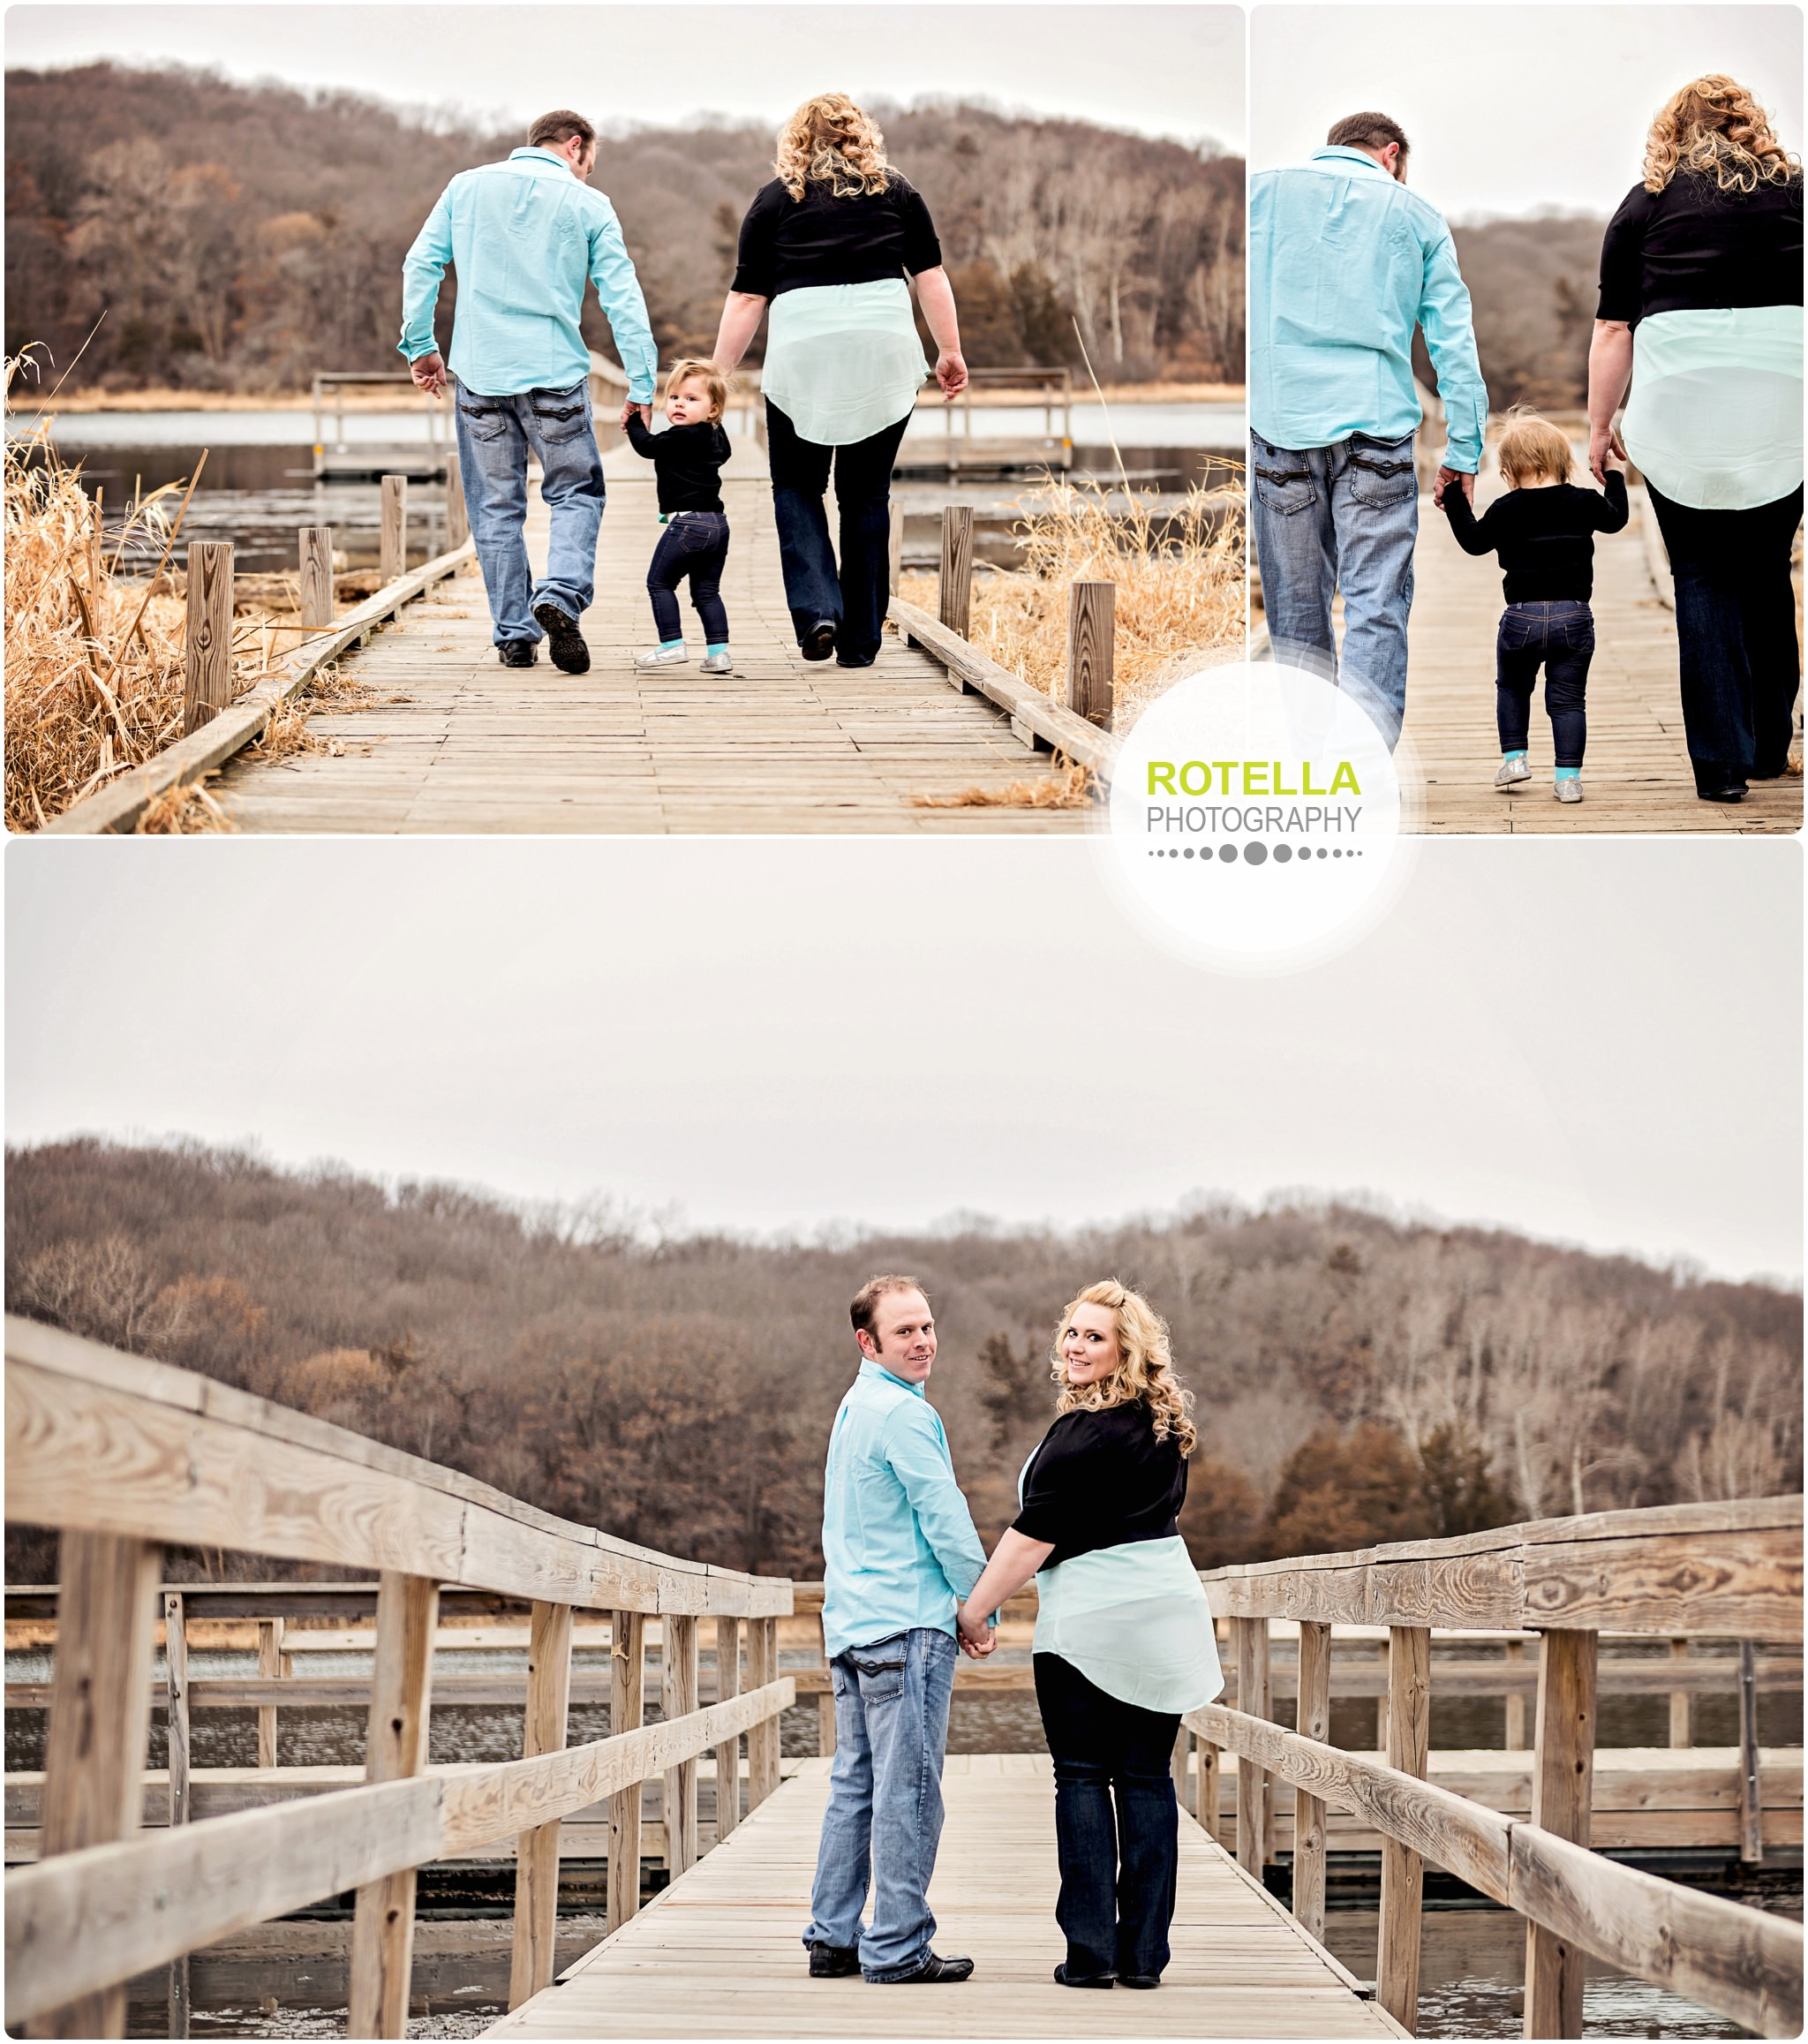 A-M-Minneapolis-Engagement-Photography-Rotella-Photography-2015_0013